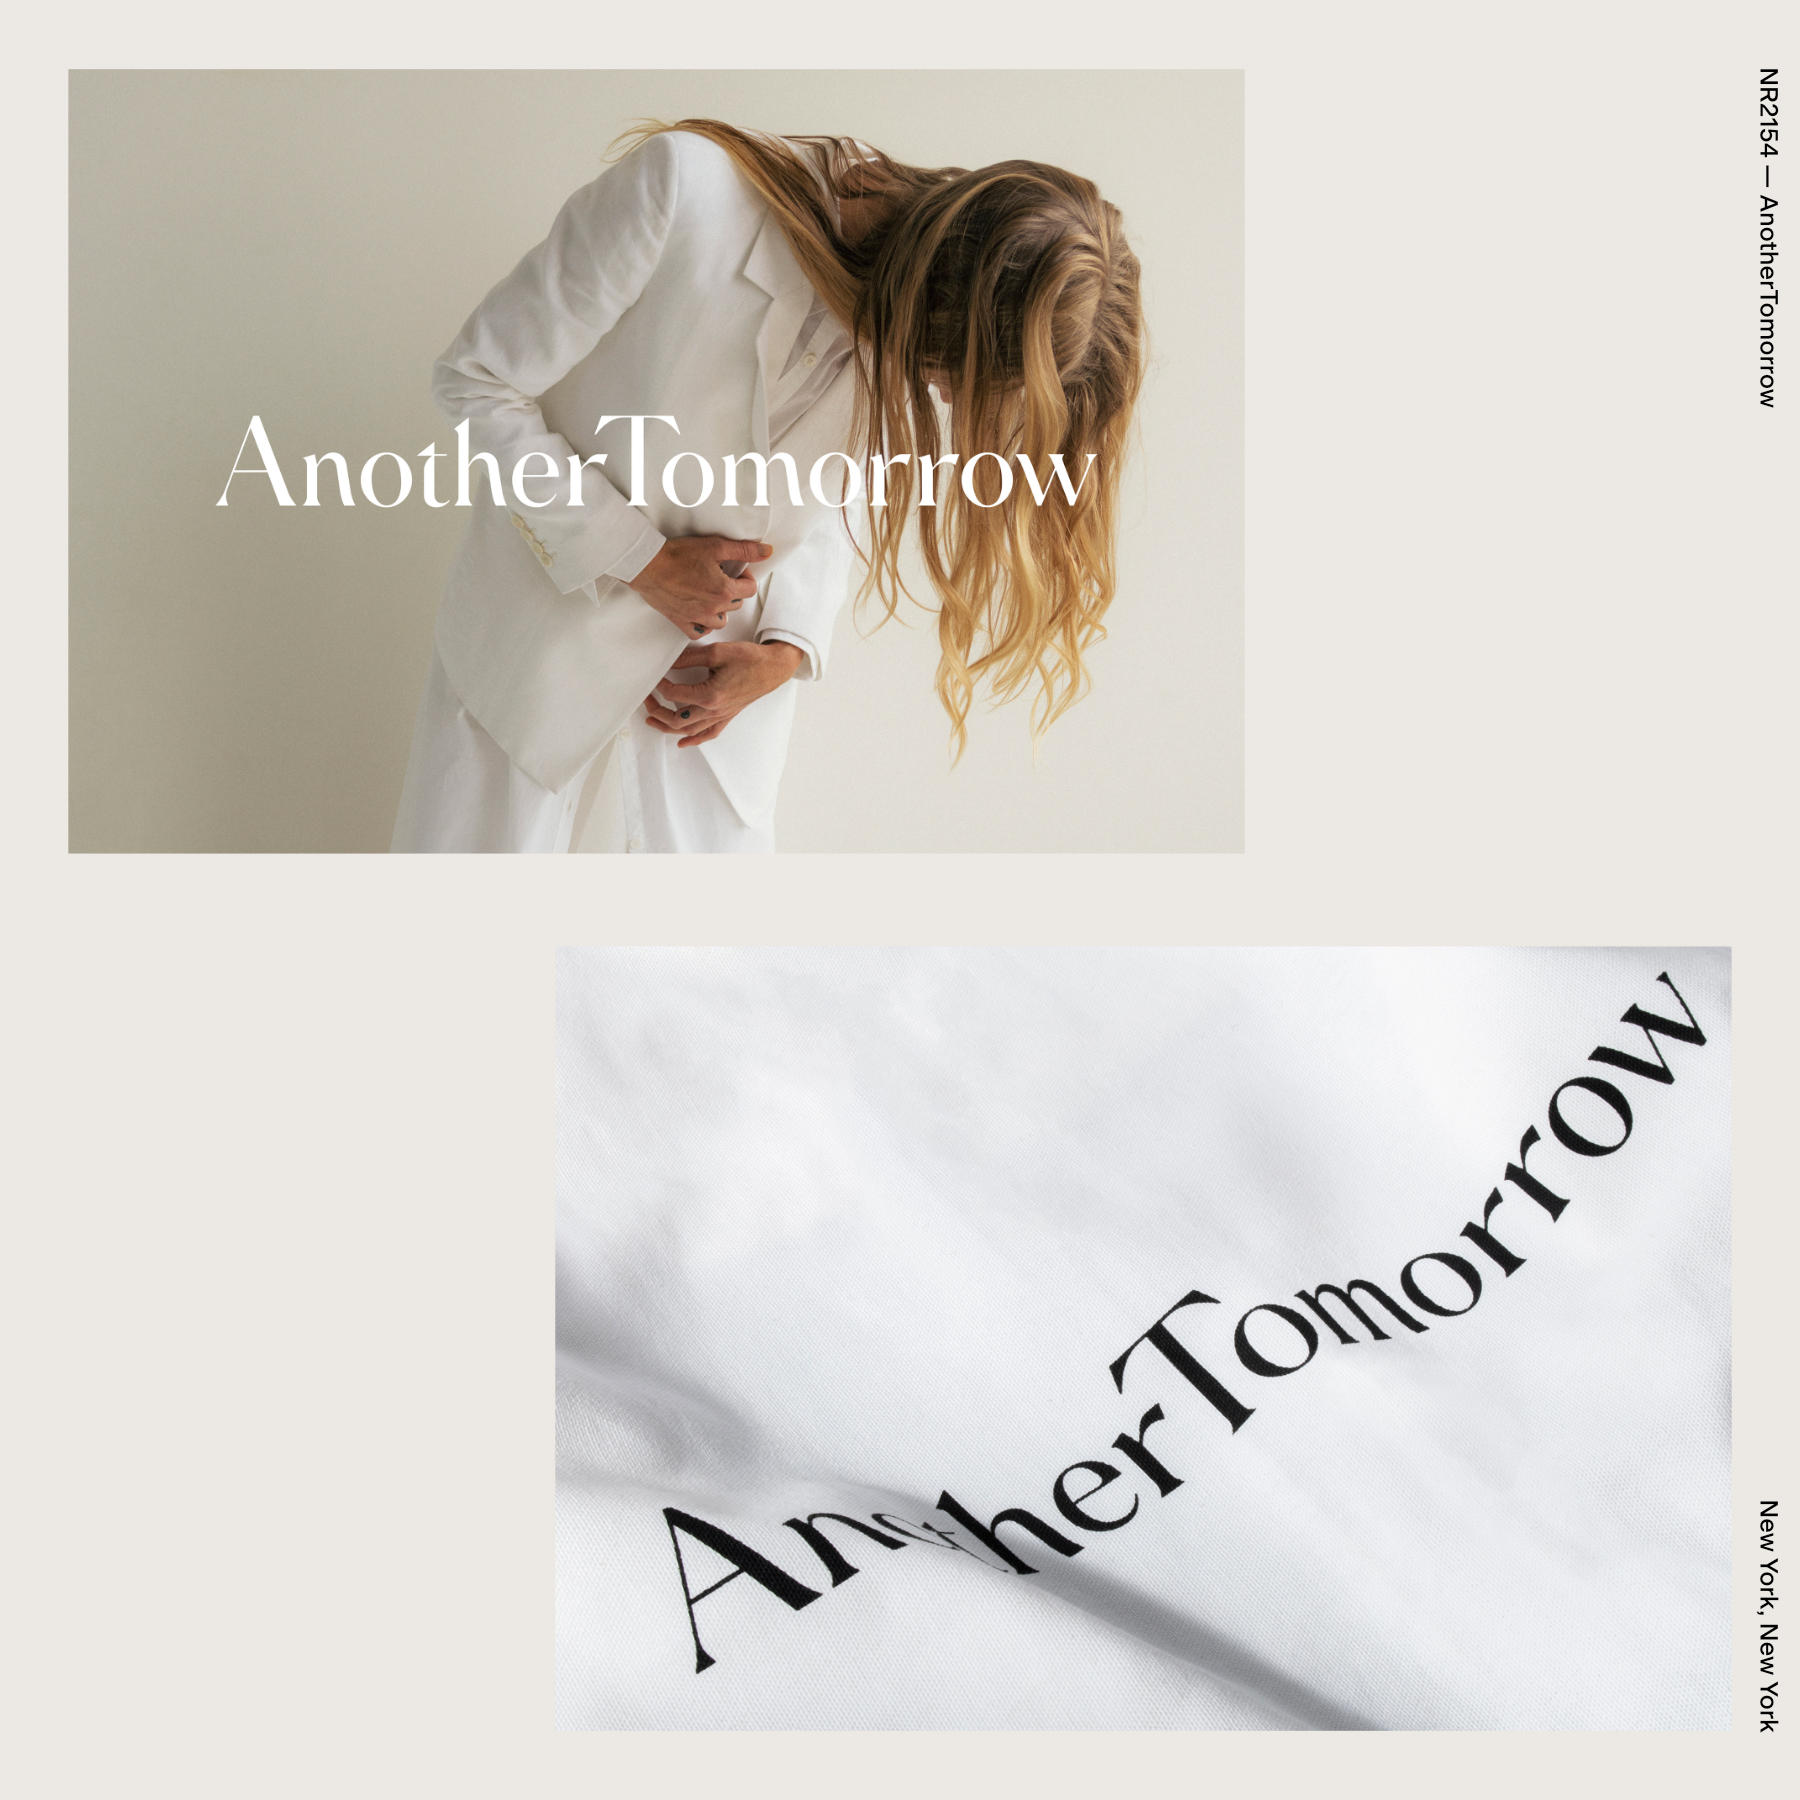 NR2154 — AnotherTomorrow